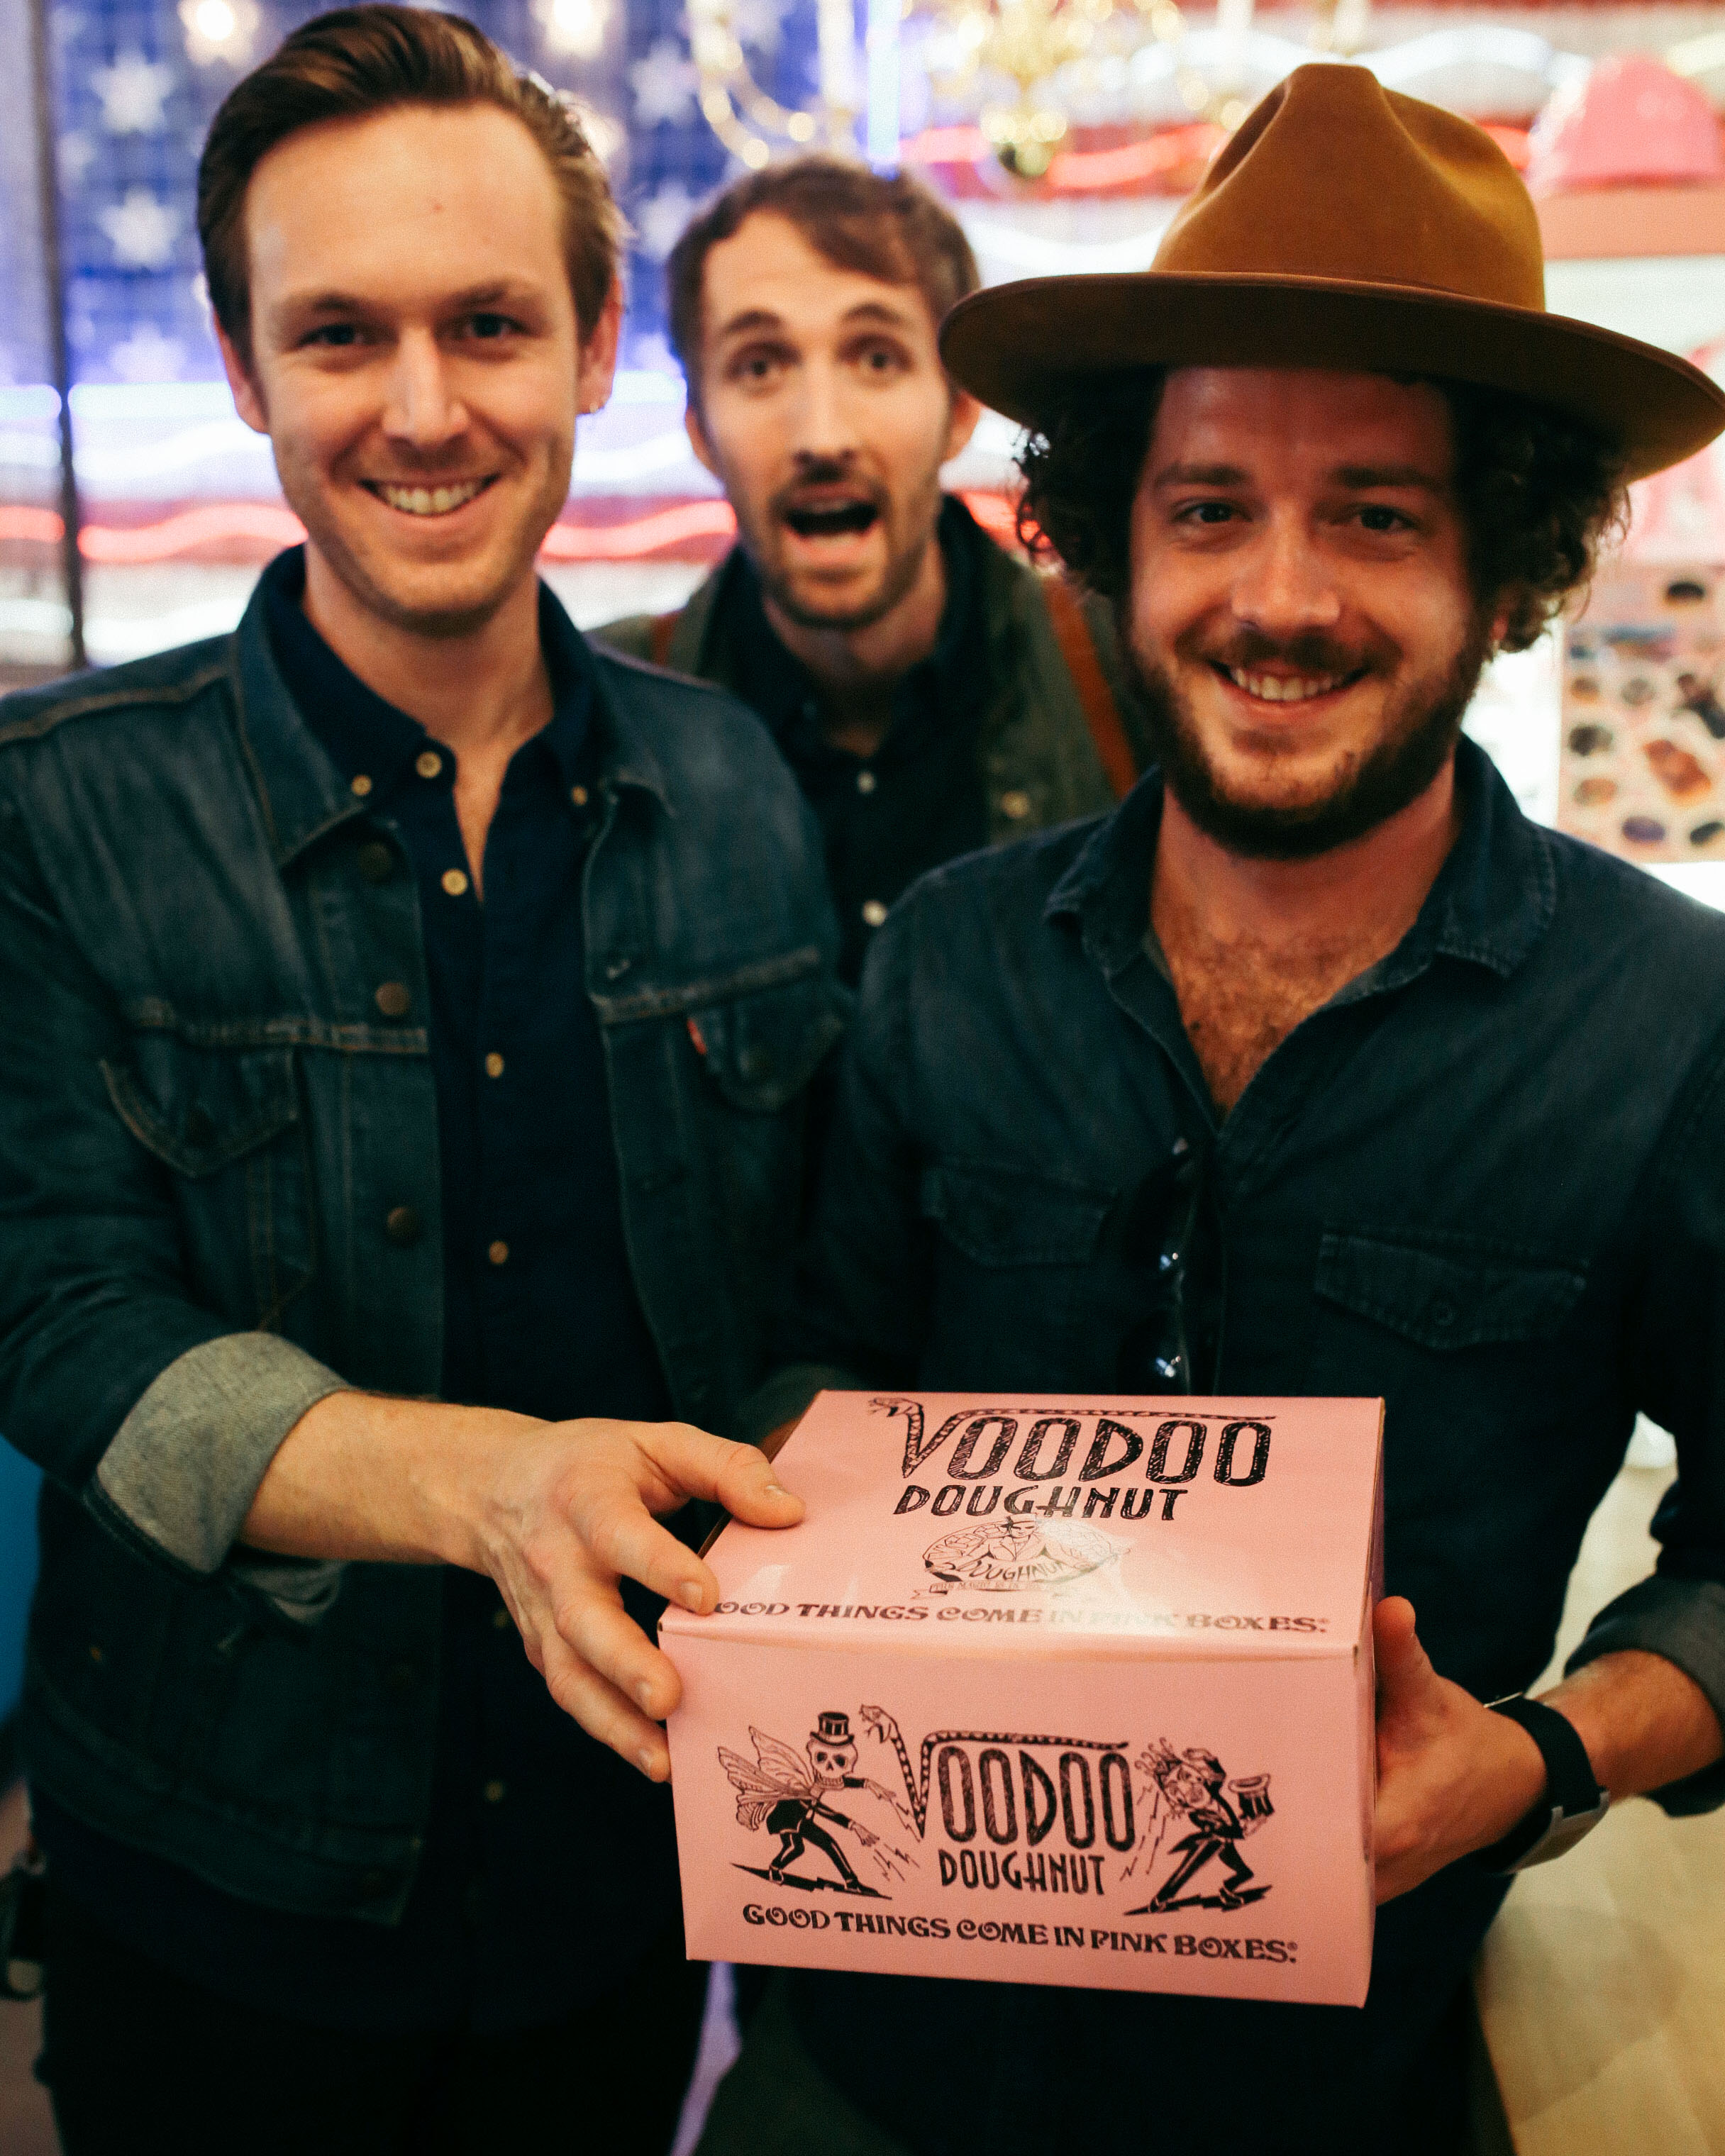 New voodoo donuts on 6th street? Yes please! This was after we just ate Czech stop.